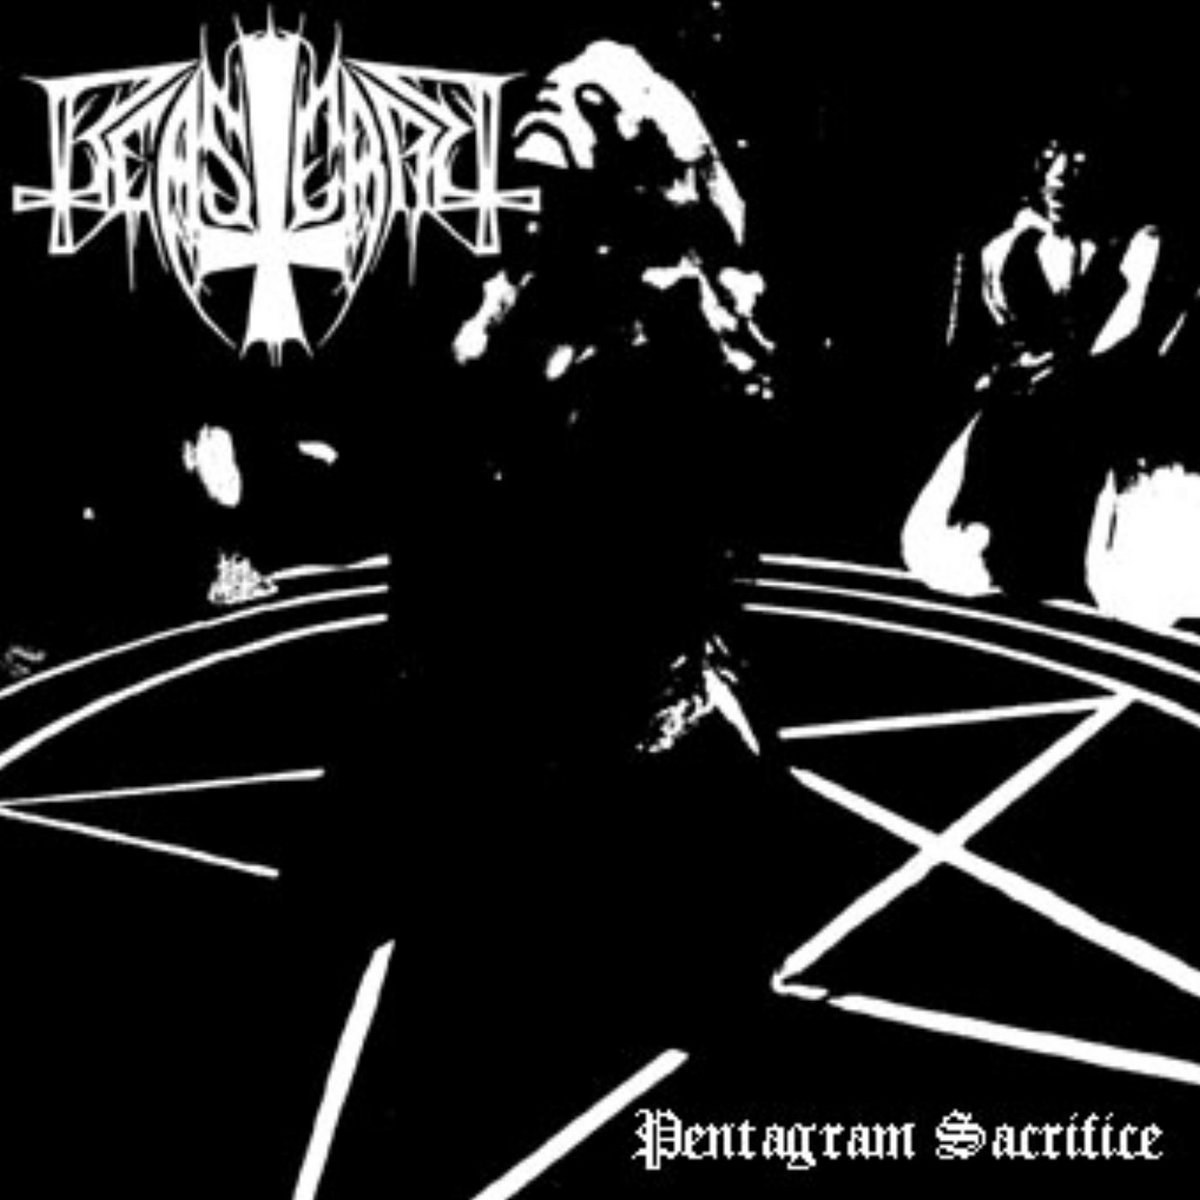 Review for Beastcraft - Pentagram Sacrifice